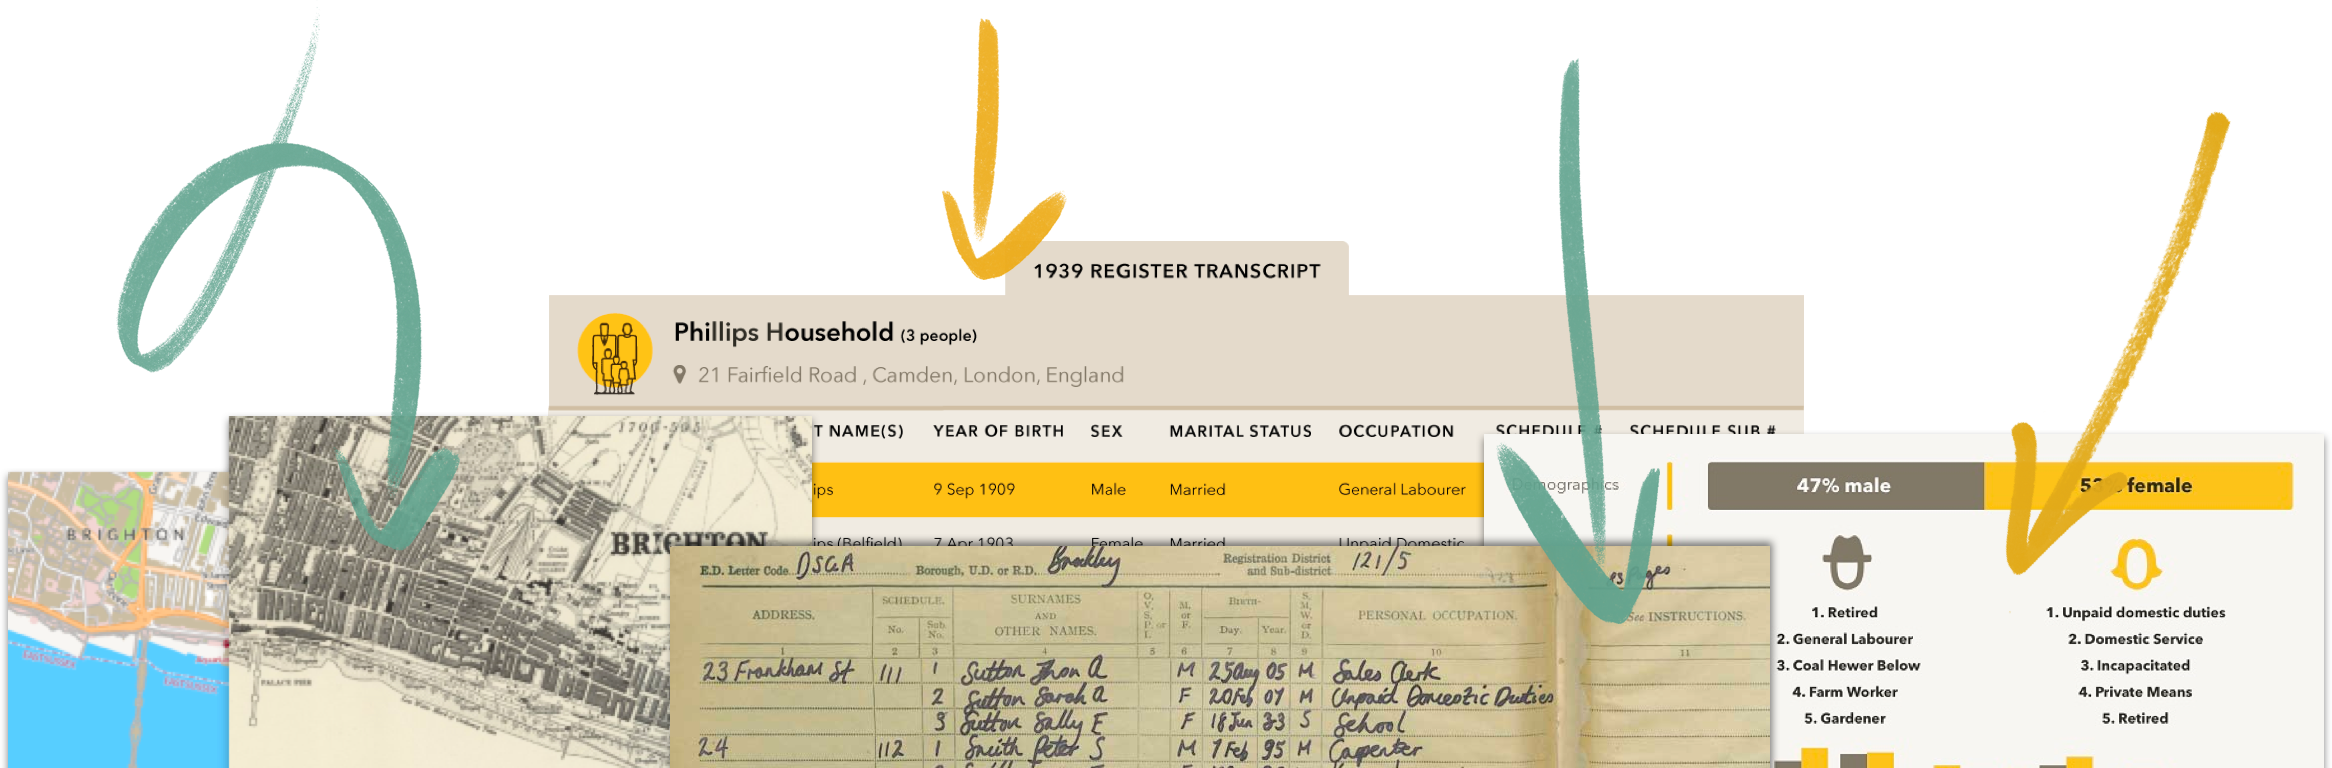 A collage of photos of an old 1939 map, household transcripts of the 1939 register as viewable on Findmypast, original scanned pages from the 1939 register and statistics regarding the British population in 1939.